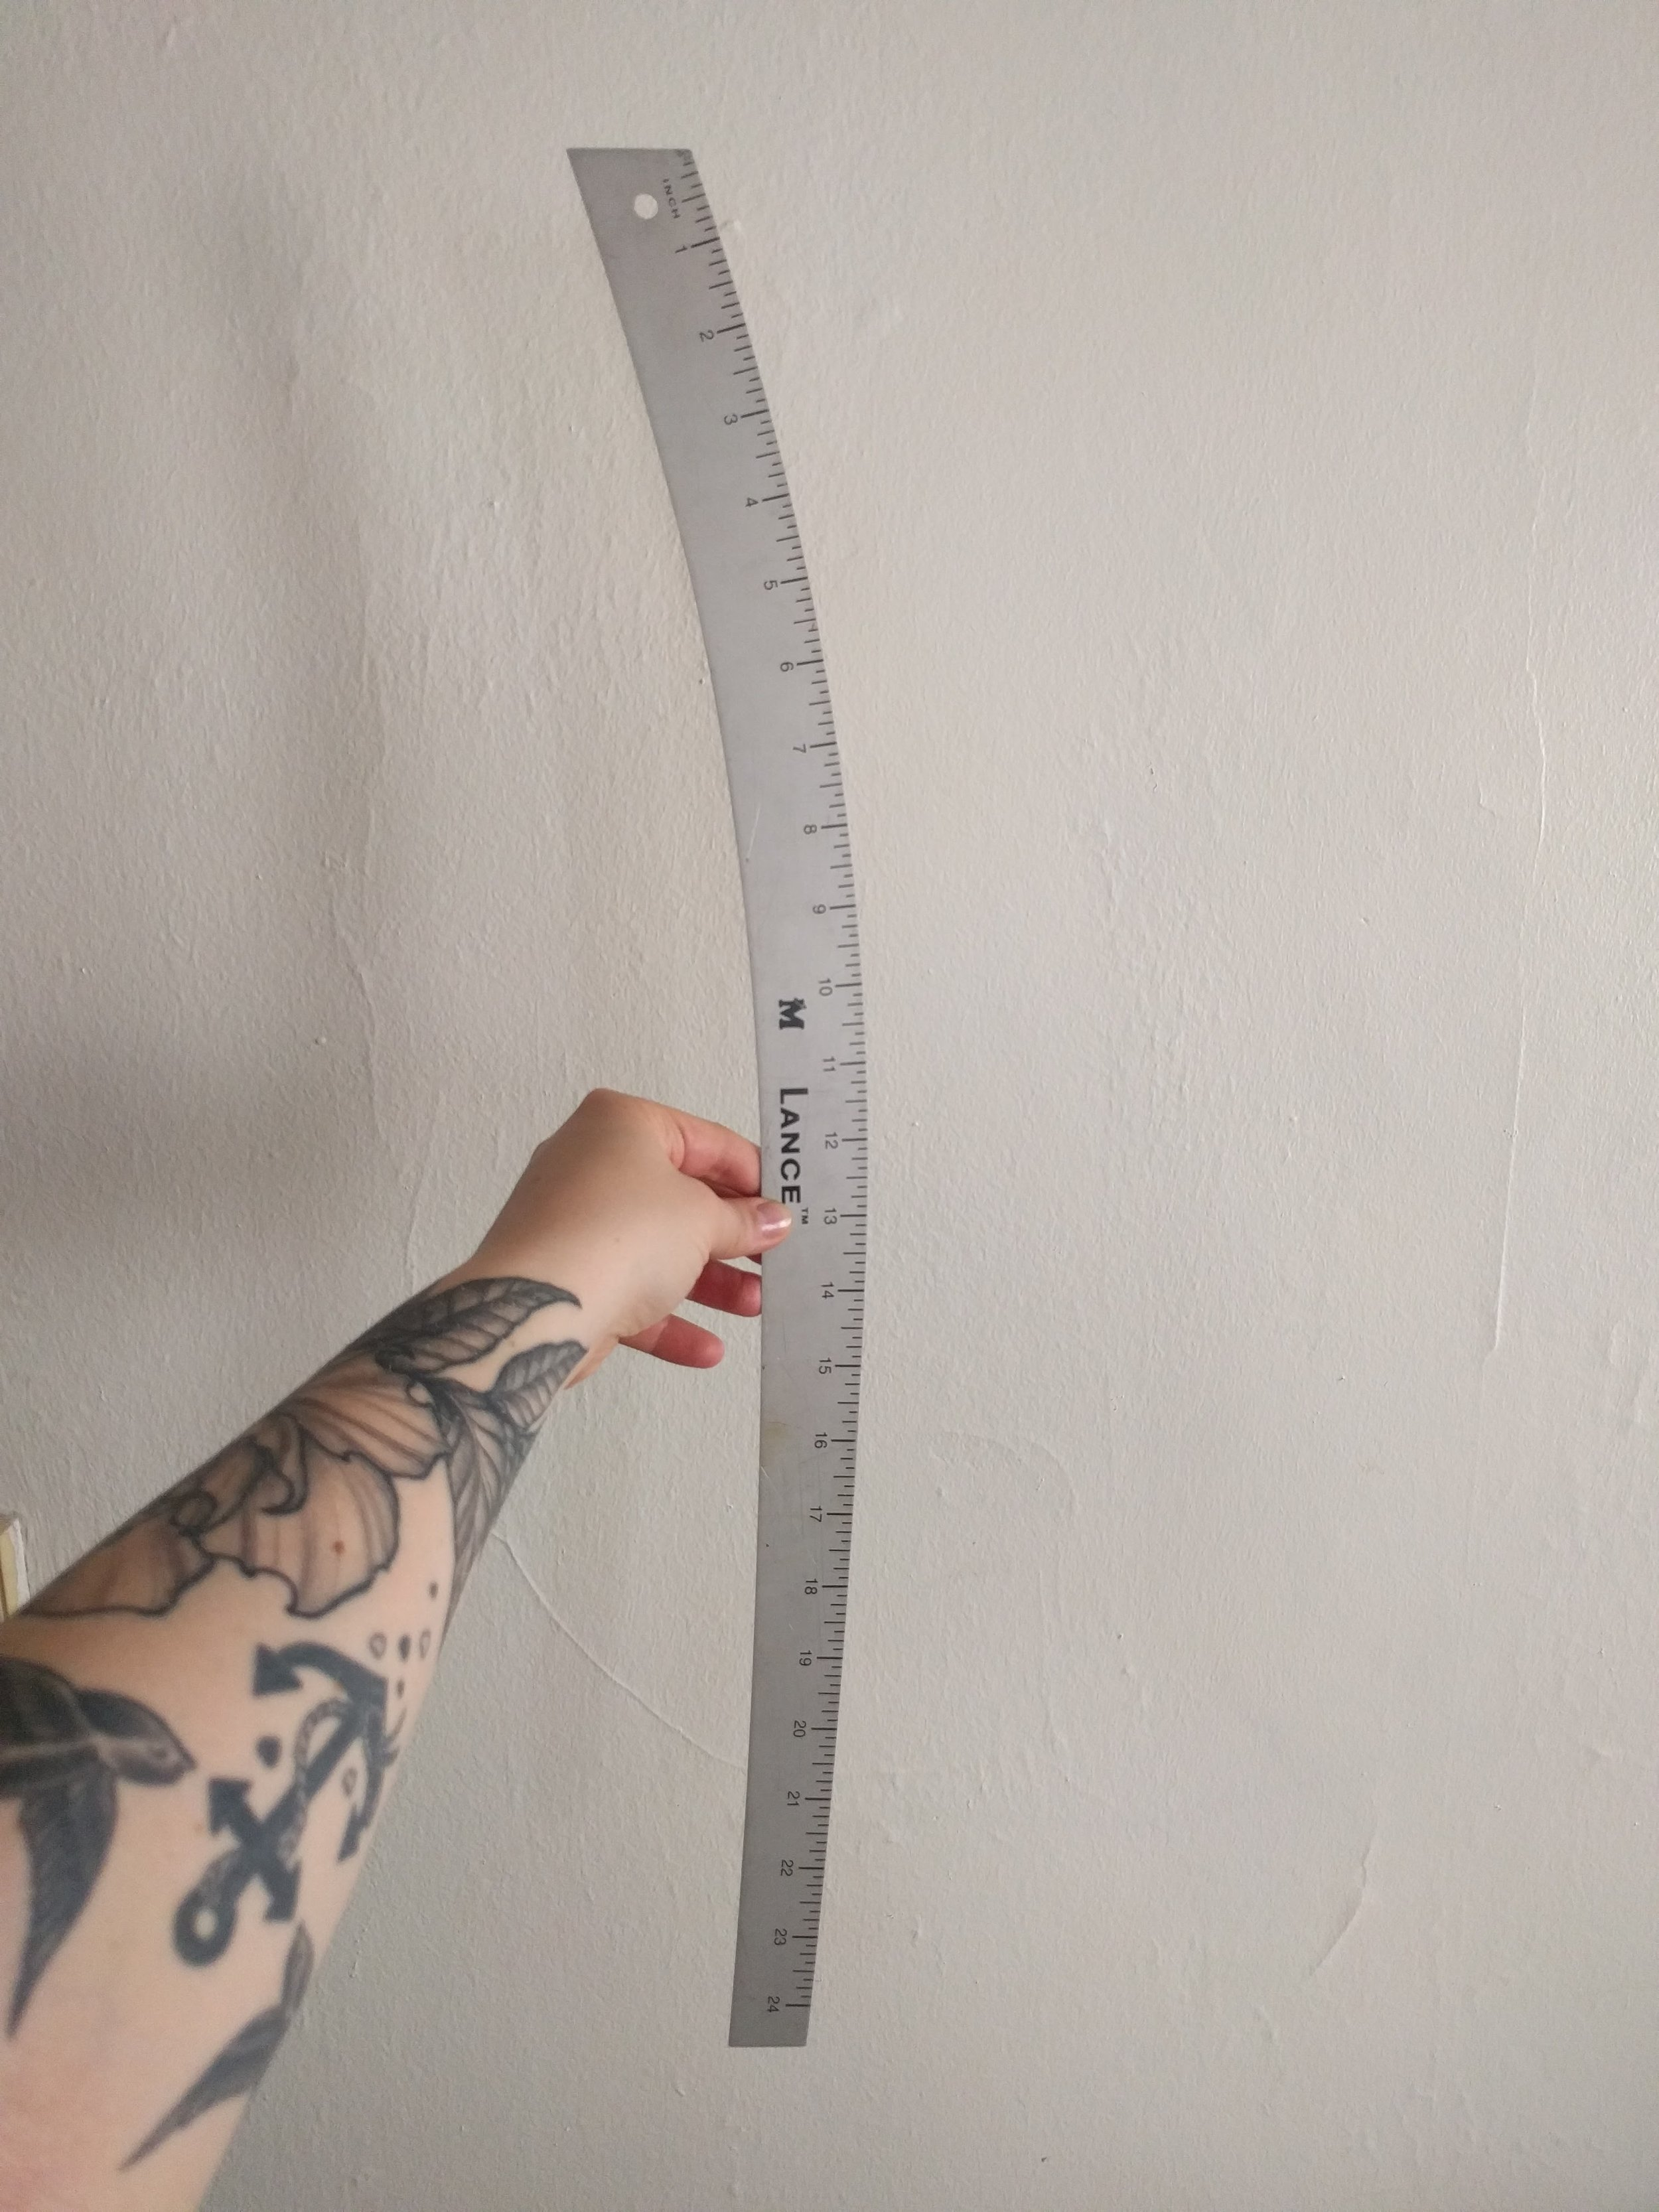 DRESS MAKER'S RULER  - TECHNICALLY, THIS IS A HIP CURVE RULER BUT IN A PINCH, IT WORKS JUST FINE FOR THIS TYPE OF PROJECT.  IF YOU DON'T HAVE A CURVE RULER, BE CREATIVE- THE MAIN GOAL IS TO KEEP THE CENTER FRONT (CF) STRAIGHT.